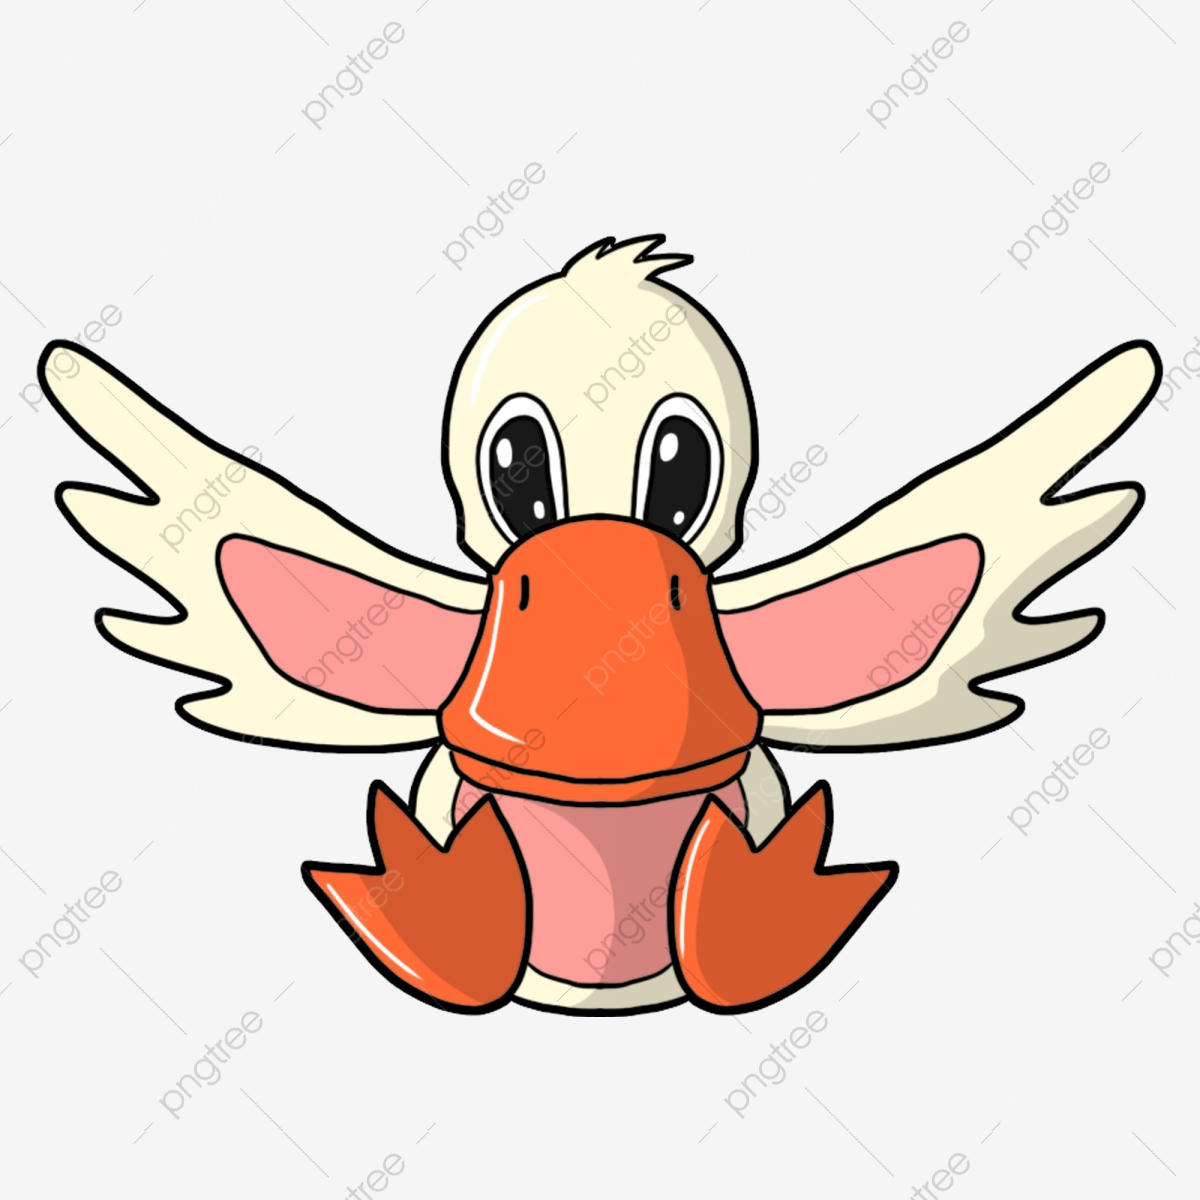 Flapping its wings light. Duckling clipart wing